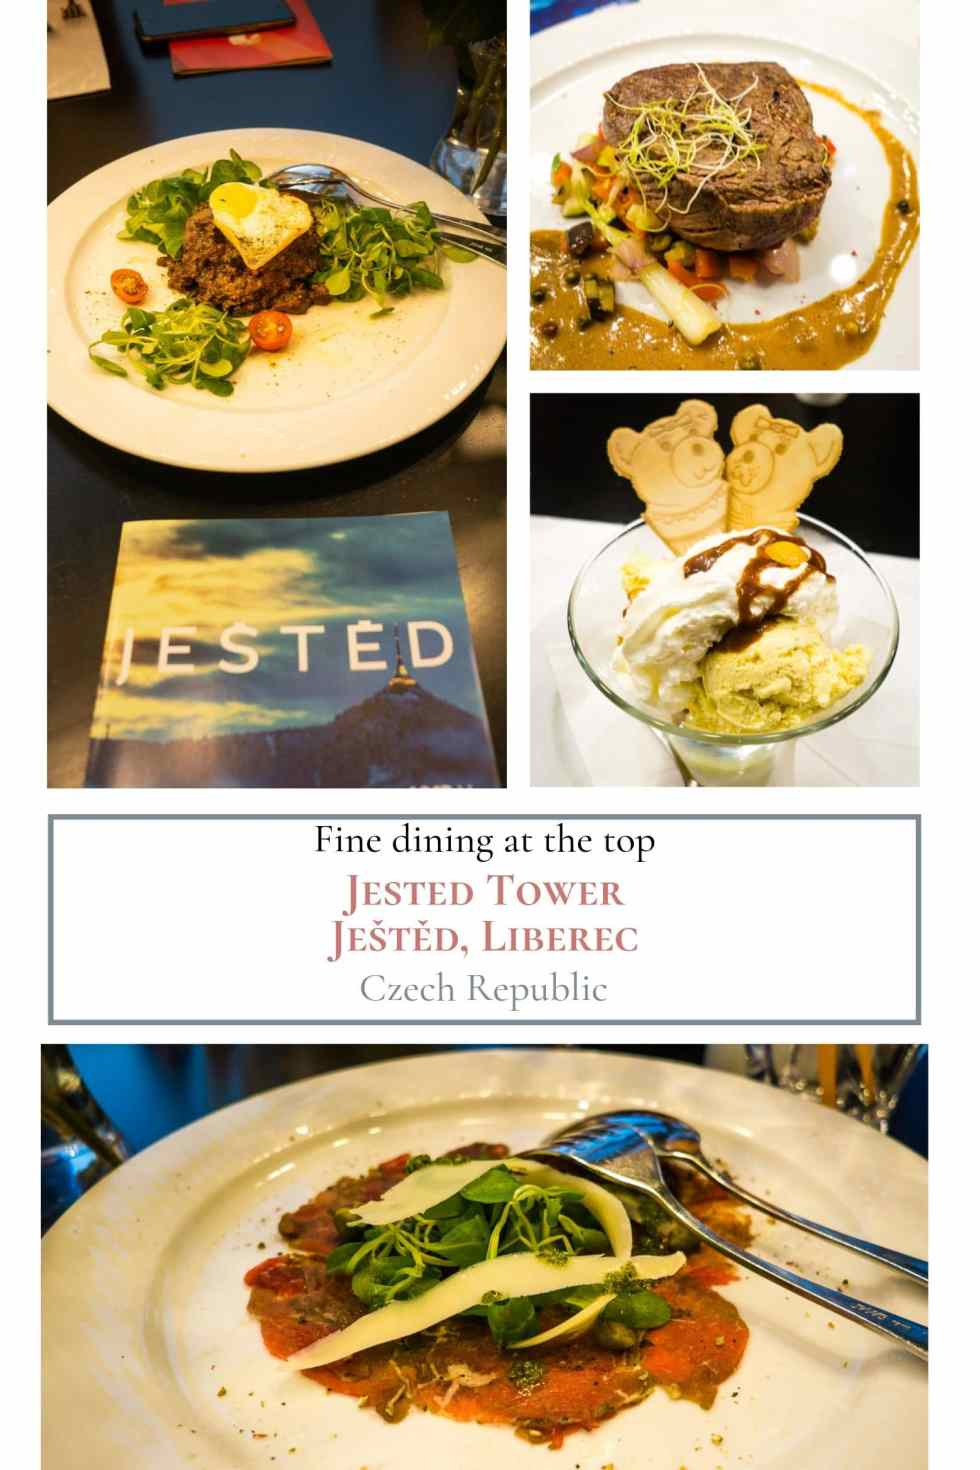 Selections from the Jested tower restaurant in a collage